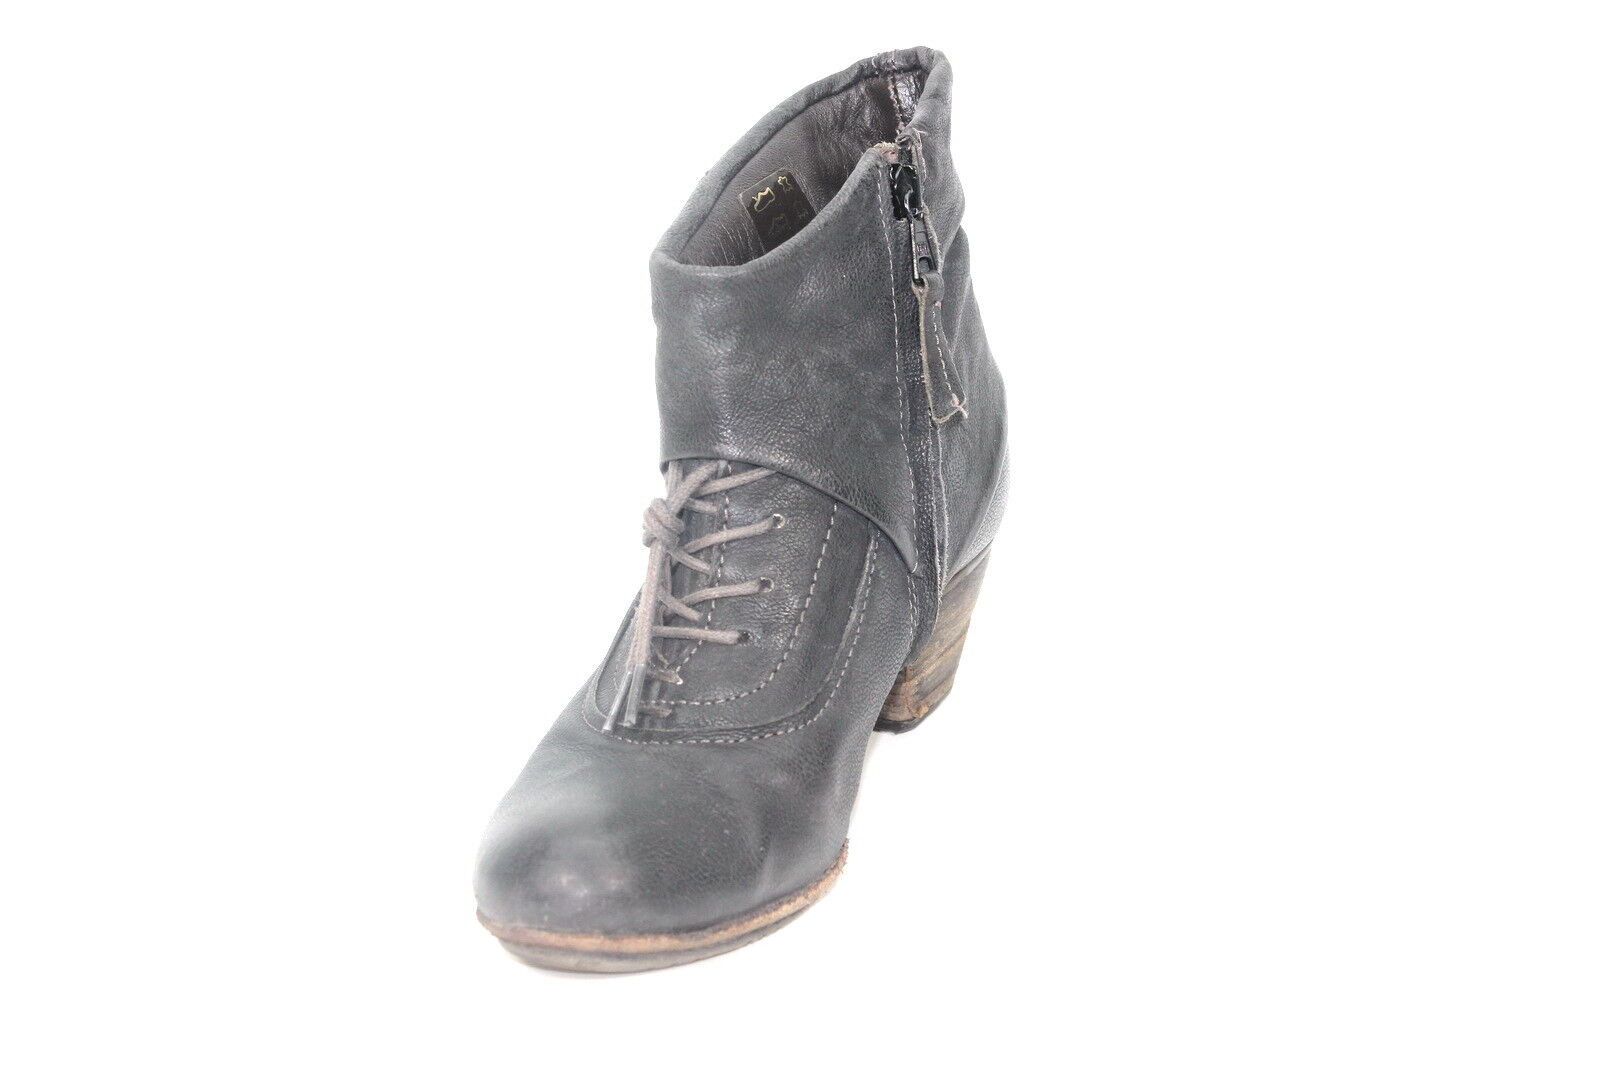 Airstep / A.S98 Damen Stiefel Stiefelette Boots Gr. 39 Nr. A232